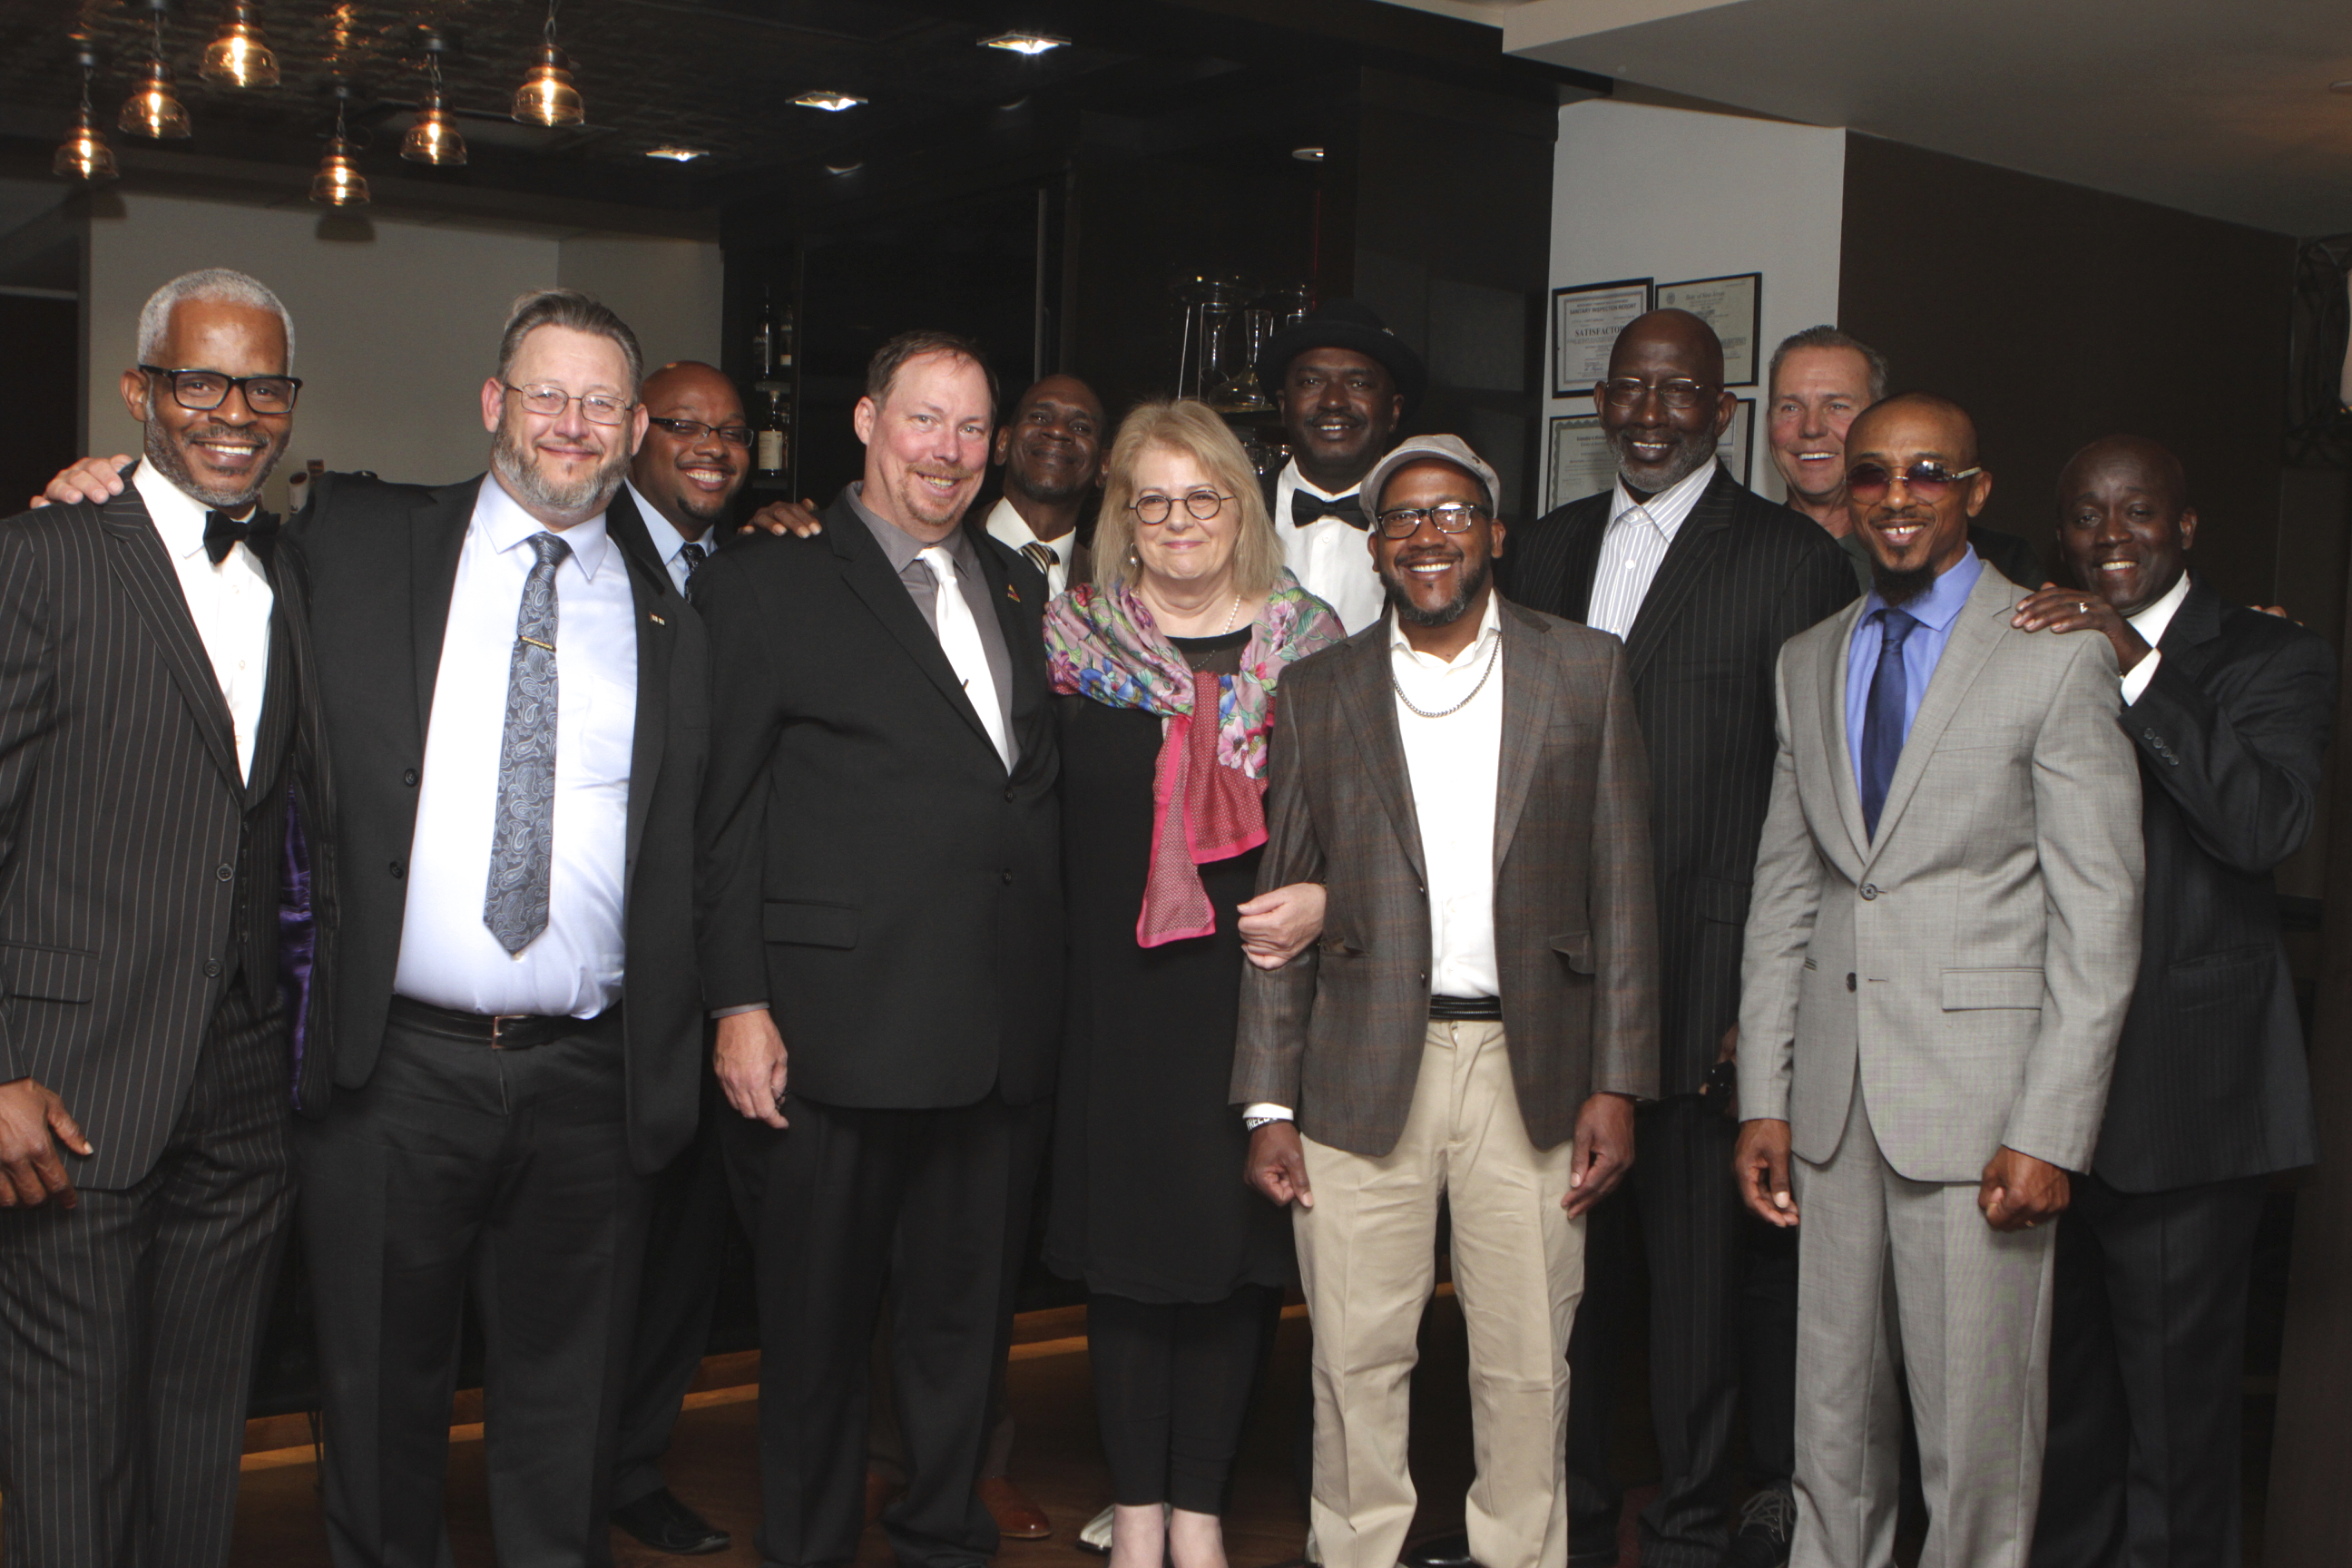 Centurion Executive Director Kate Germond with exonerees from across the country